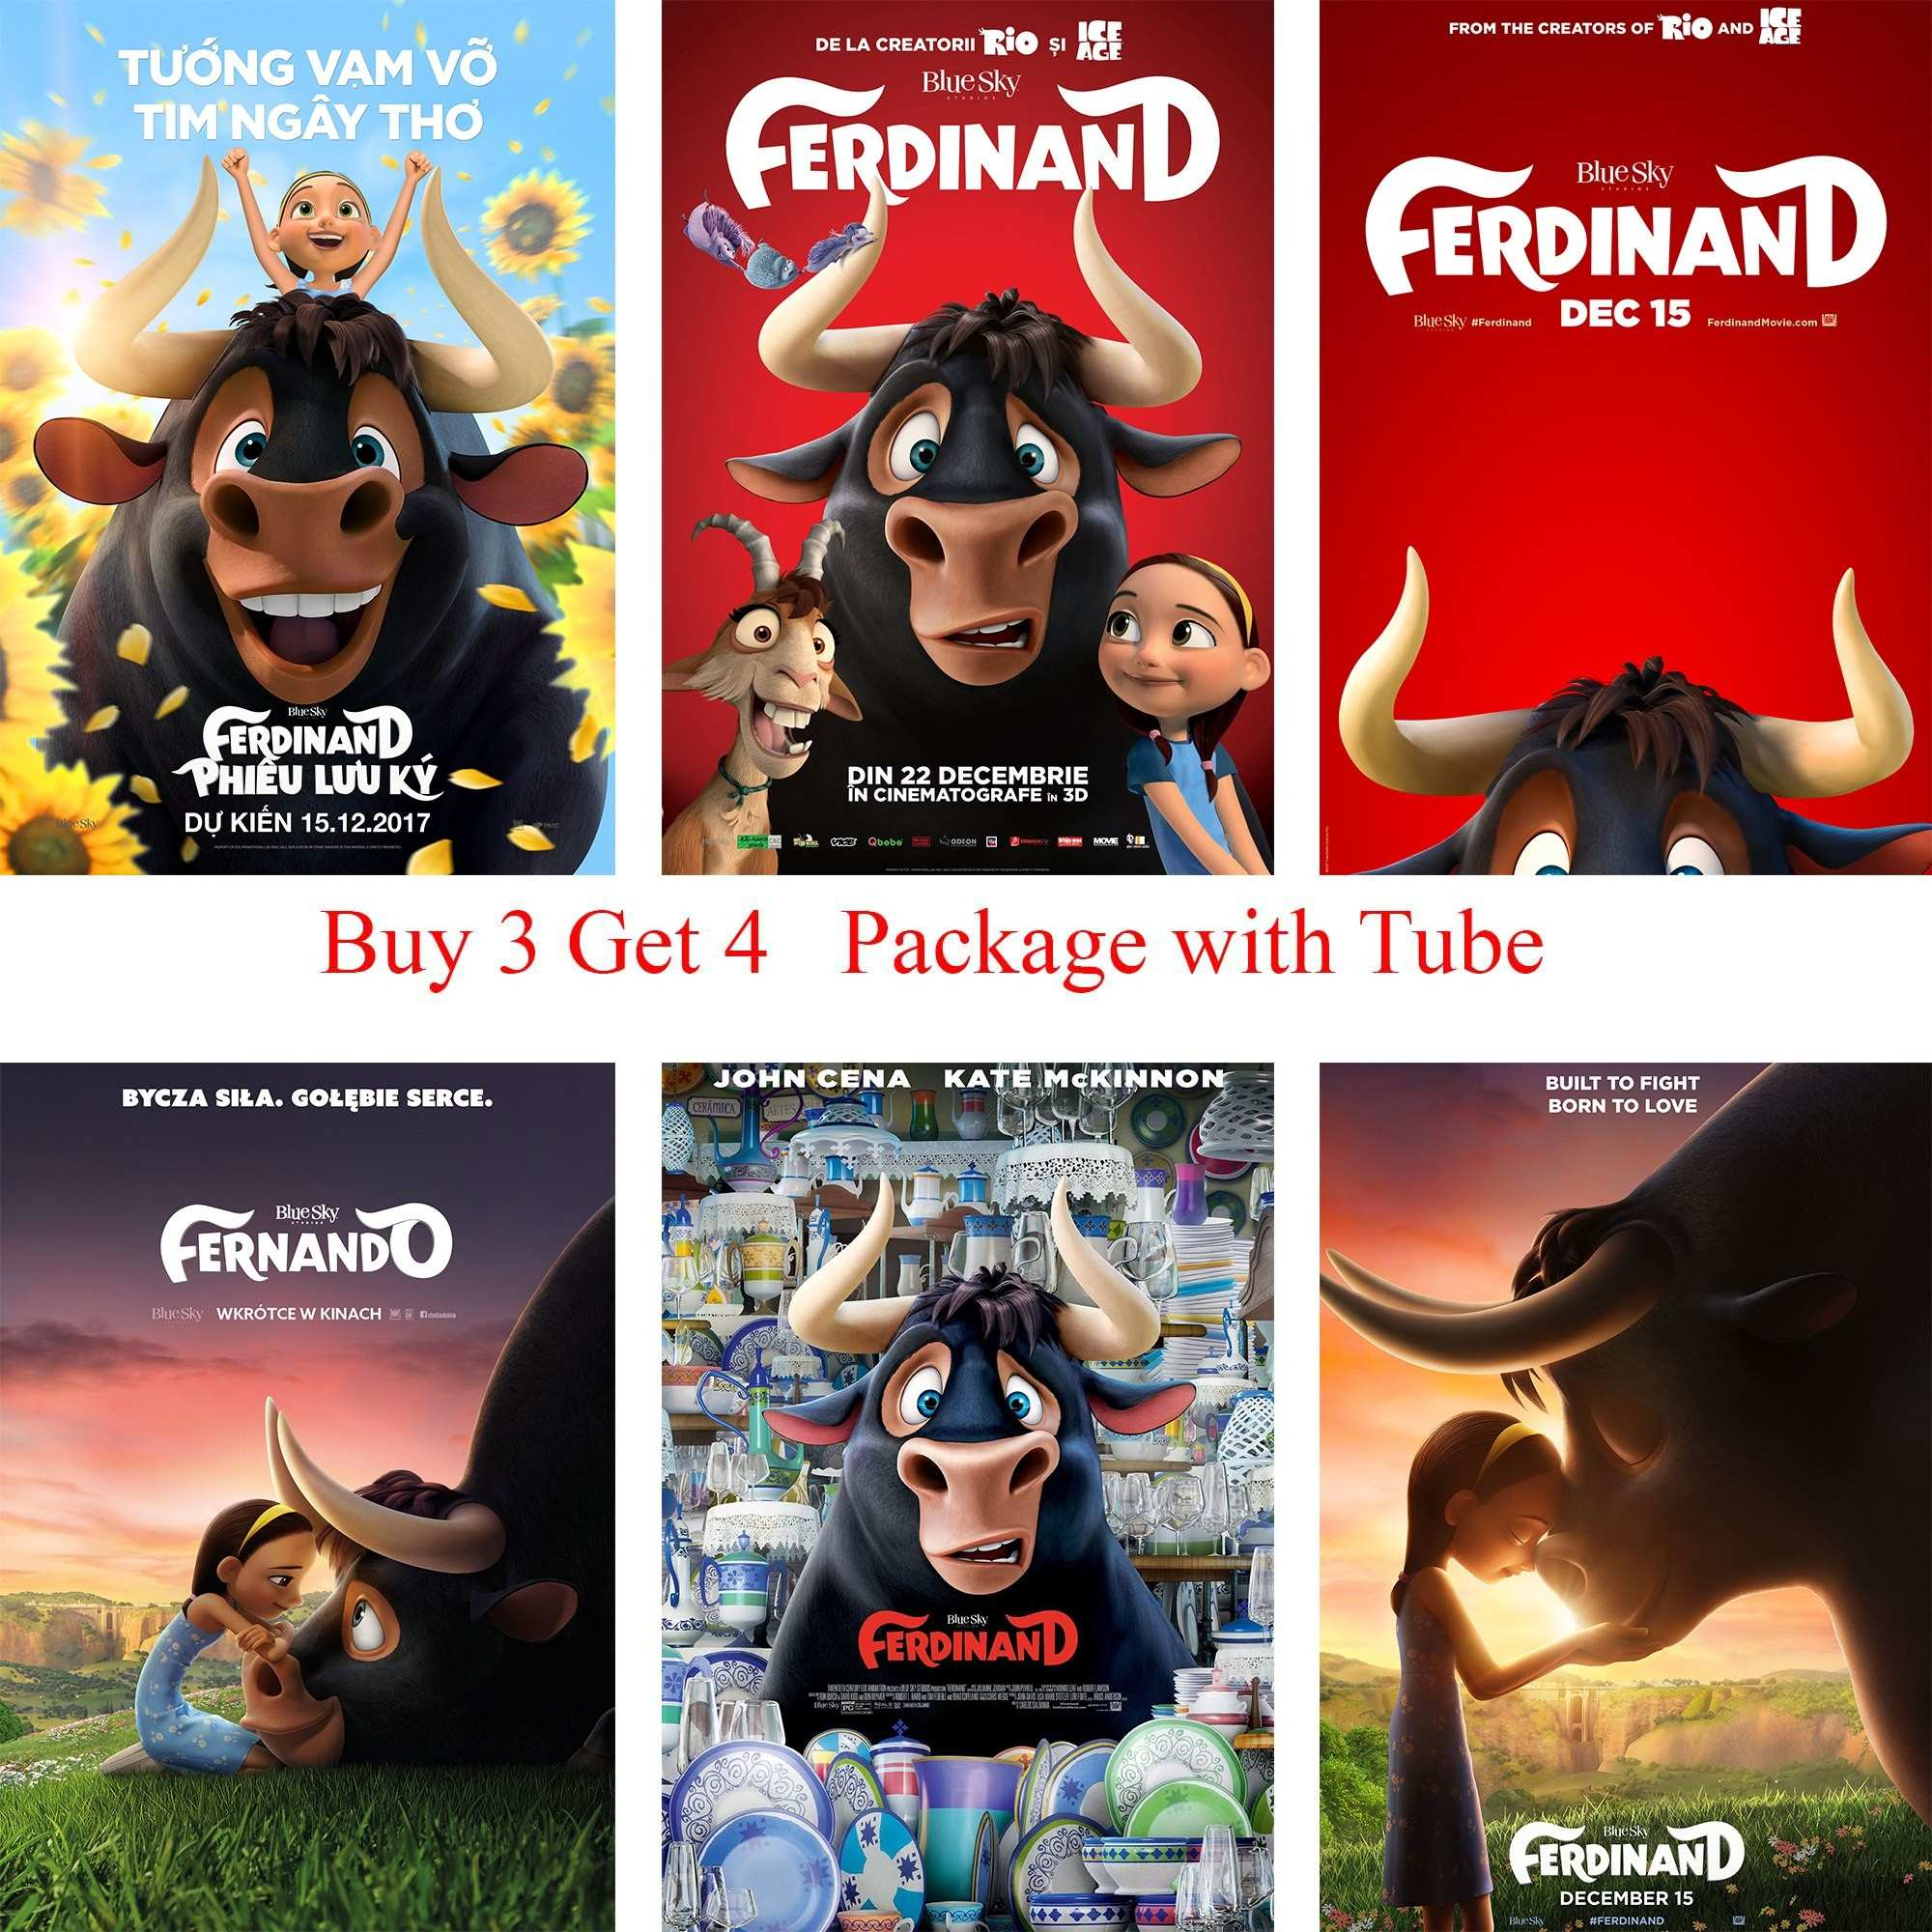 Ferdinand Posters Cartoon Wall Stickers White Coated Paper Prints